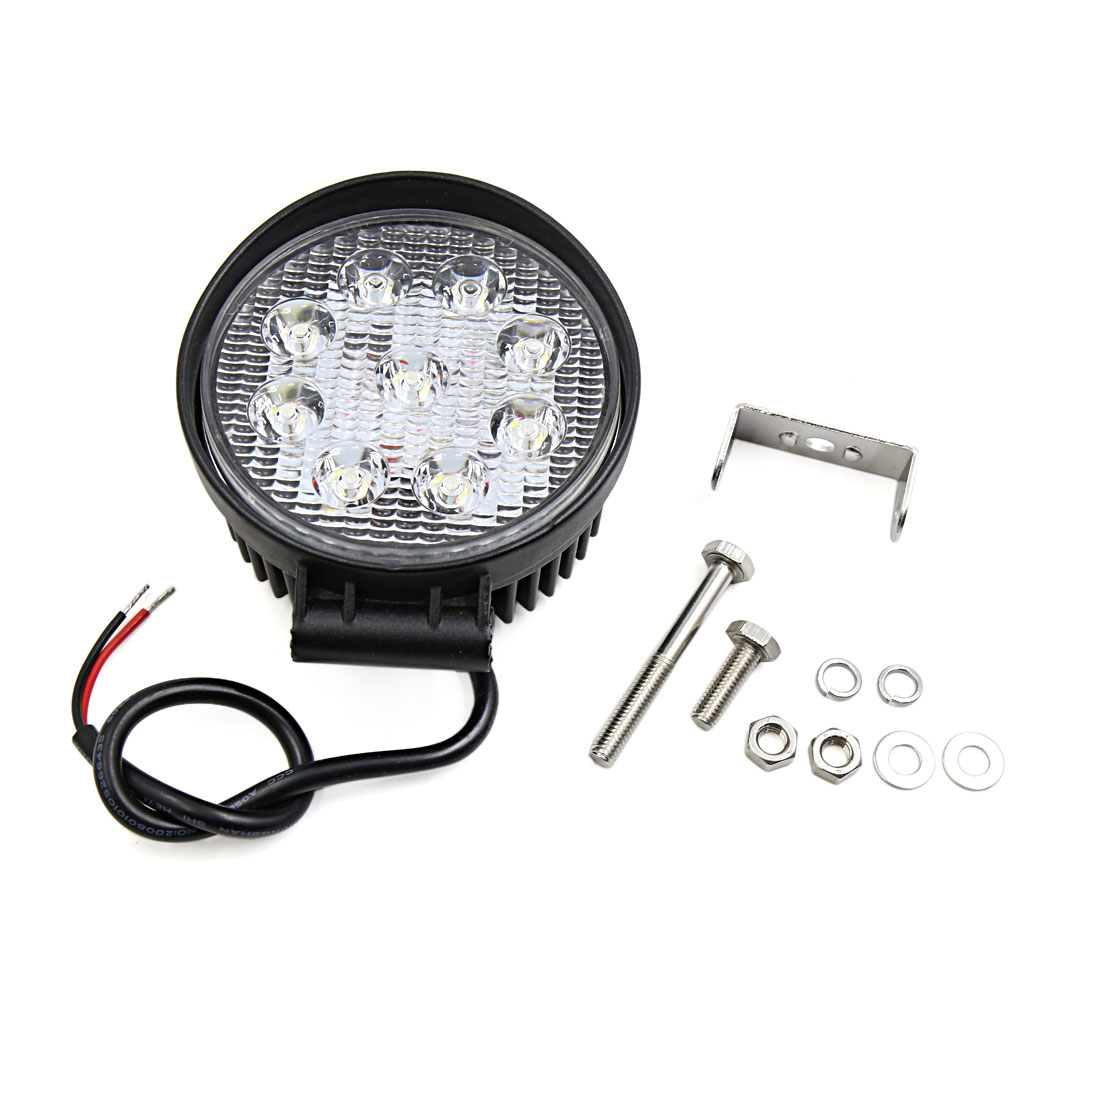 Black Metal Shell Round 27W Spot Beam 9 White LED Work Light Fog Driving Lamp for SUV ATV Jeep